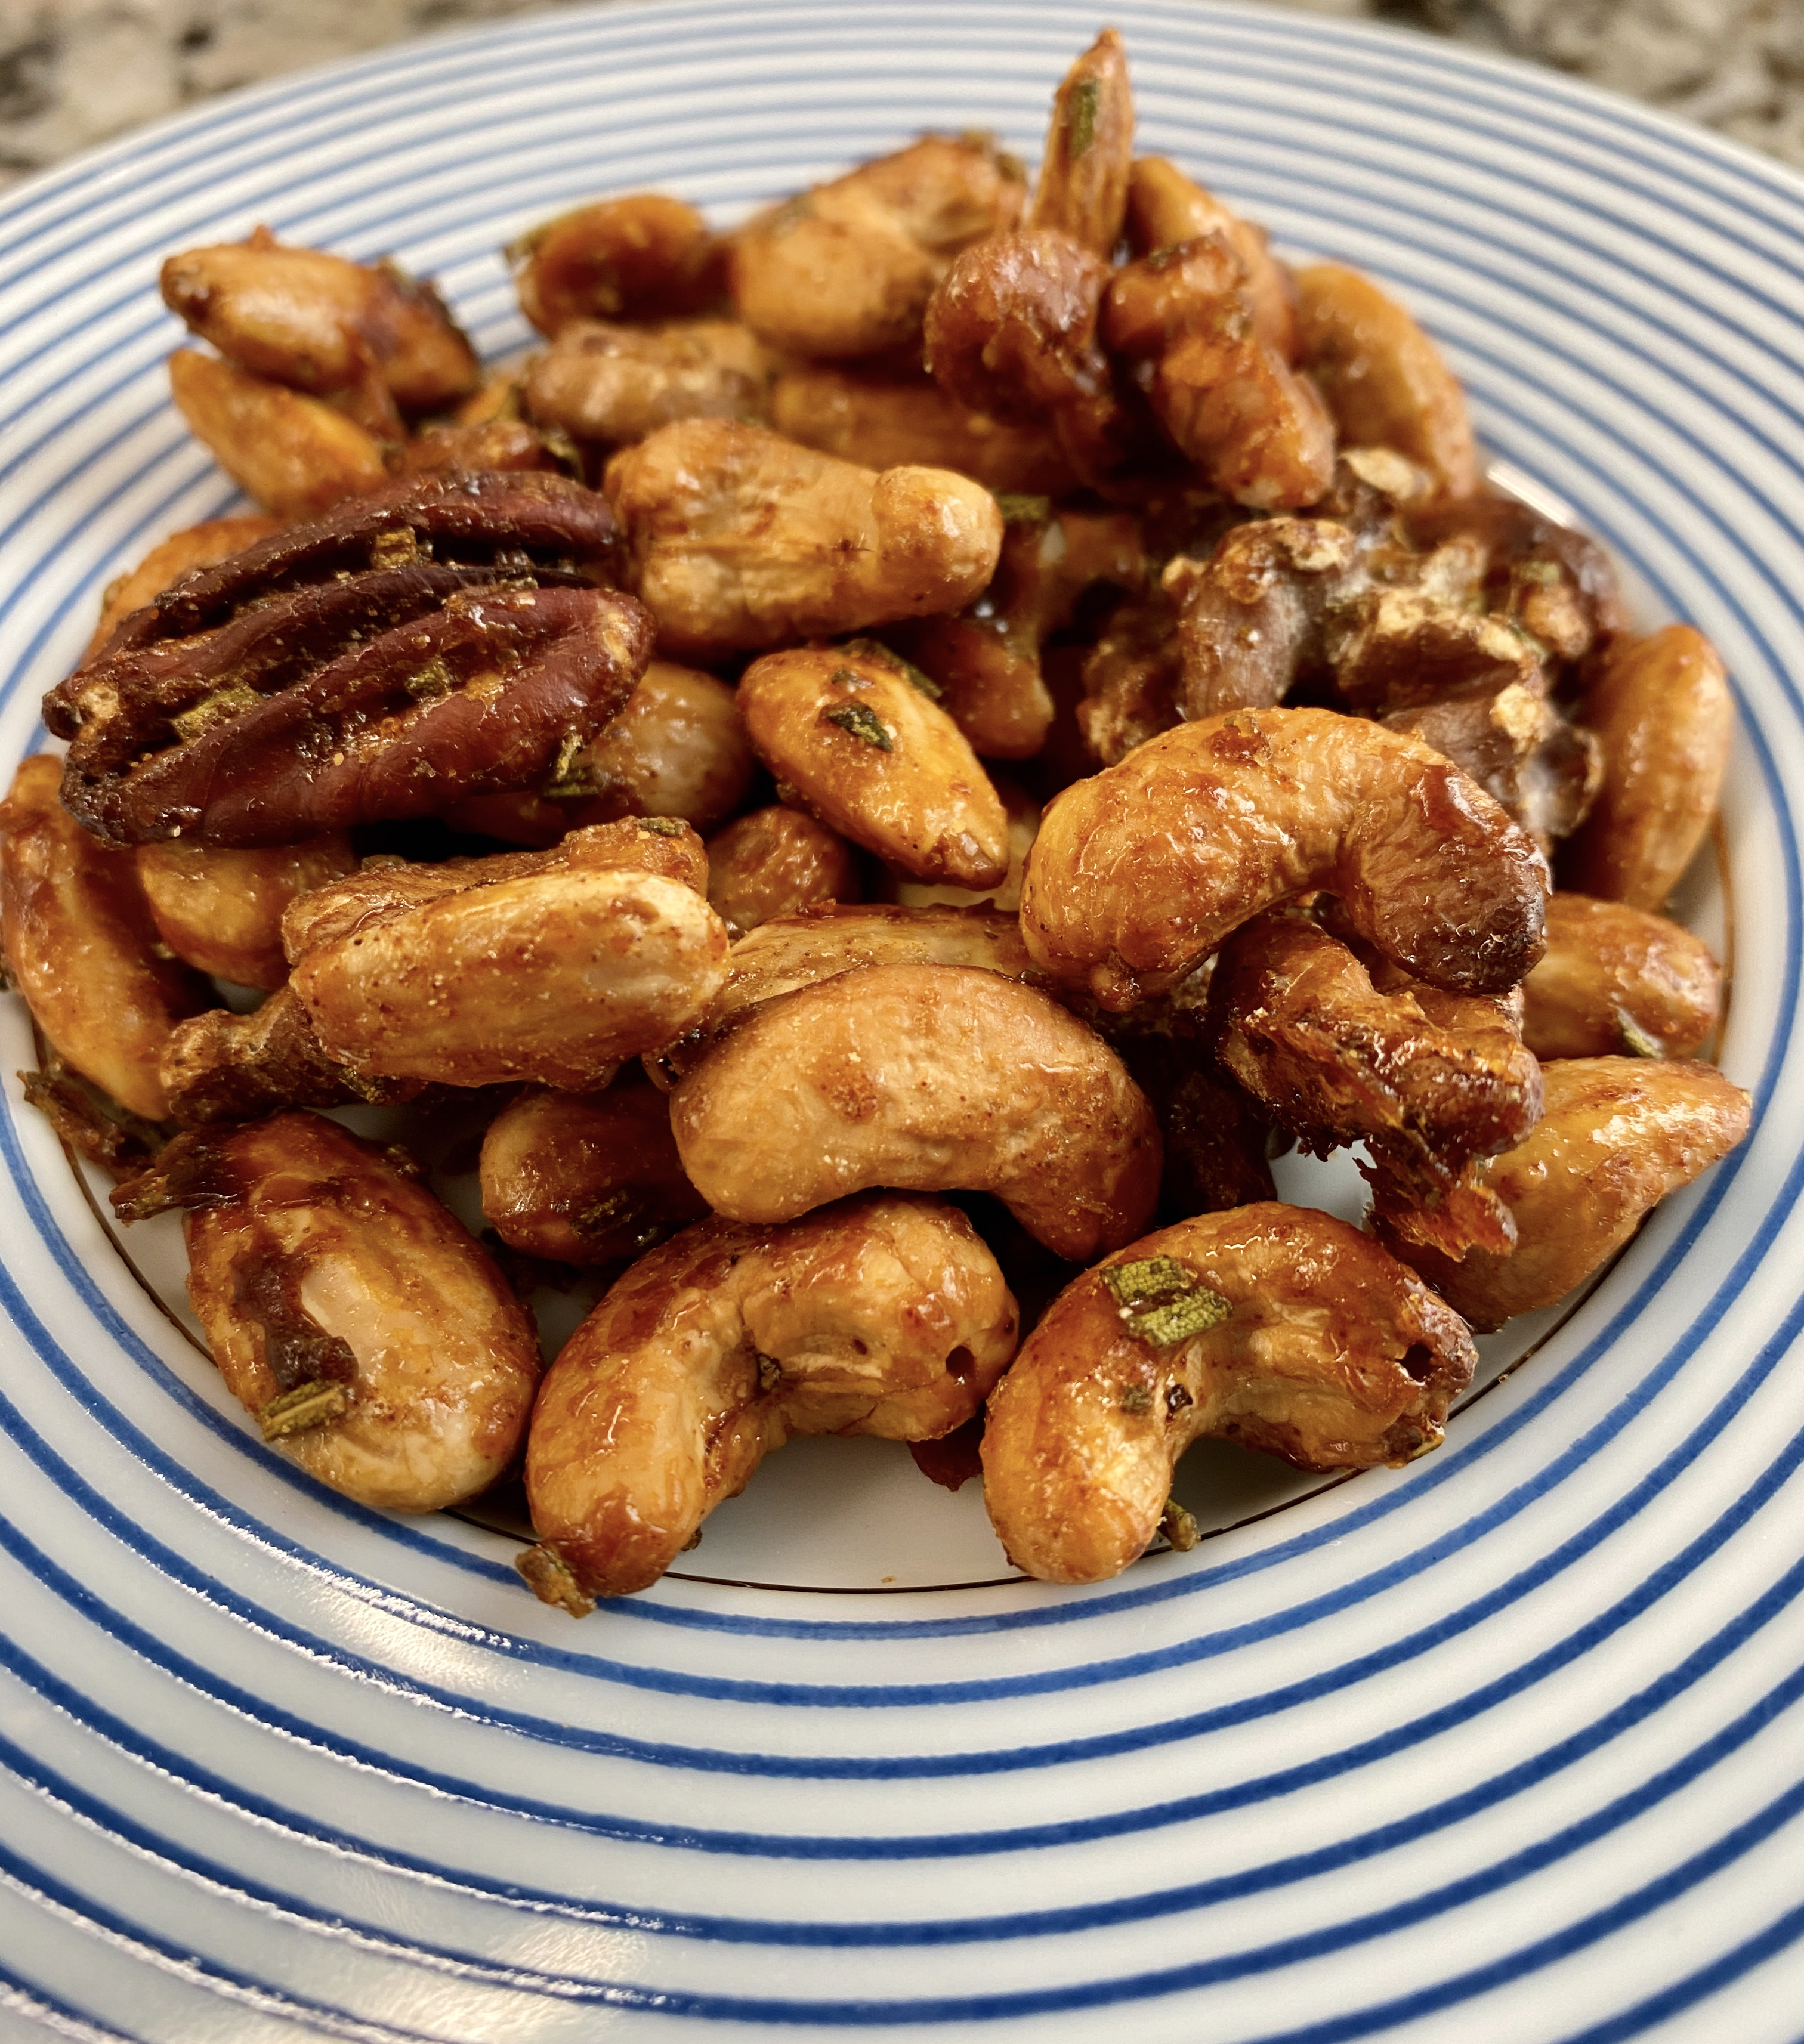 Spicy Maple Glazed Nuts are not too sweet, not too spicy, on a blue rimmed plate.